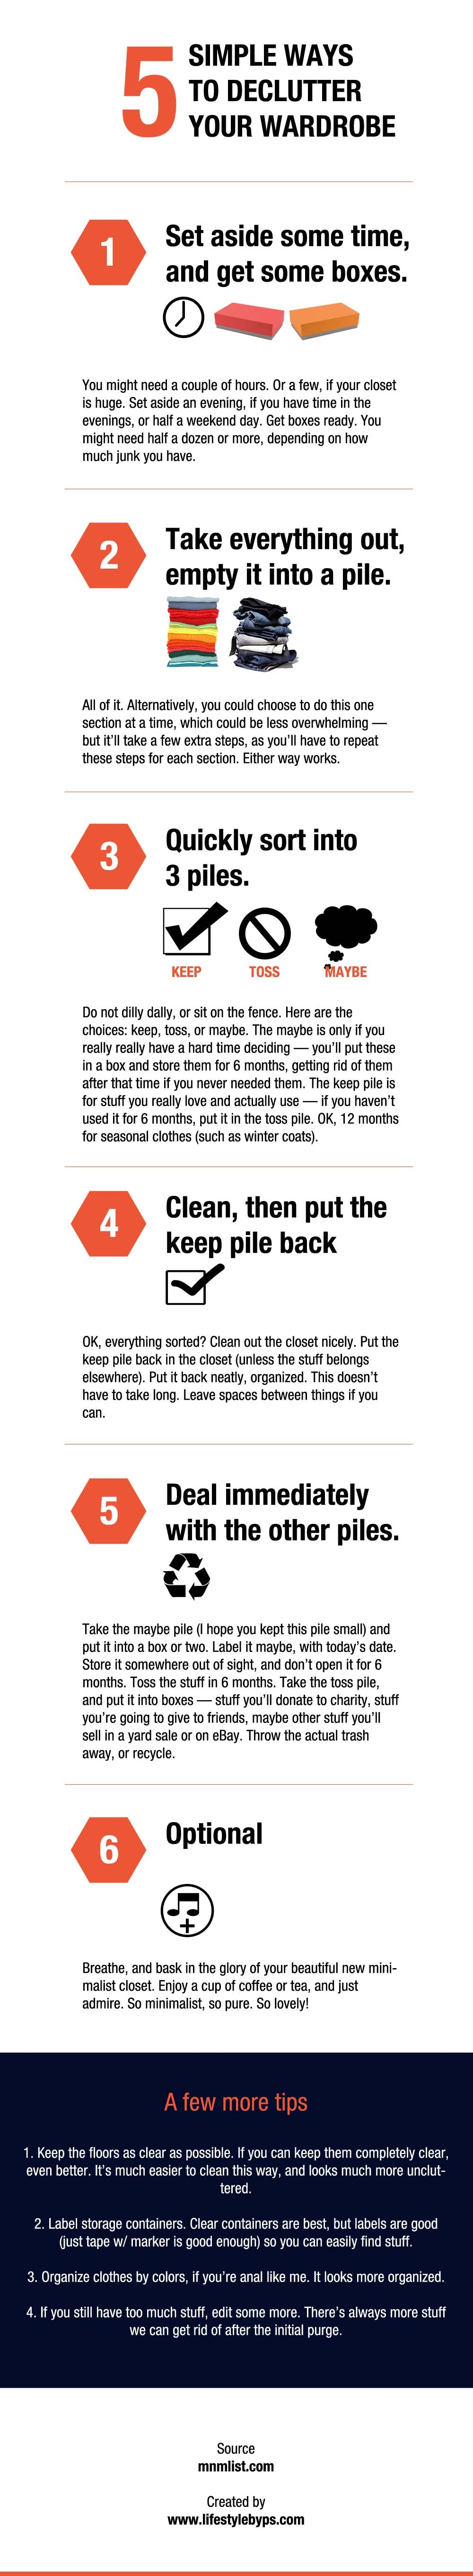 5 simple ways to declutter your wardrobe infographic